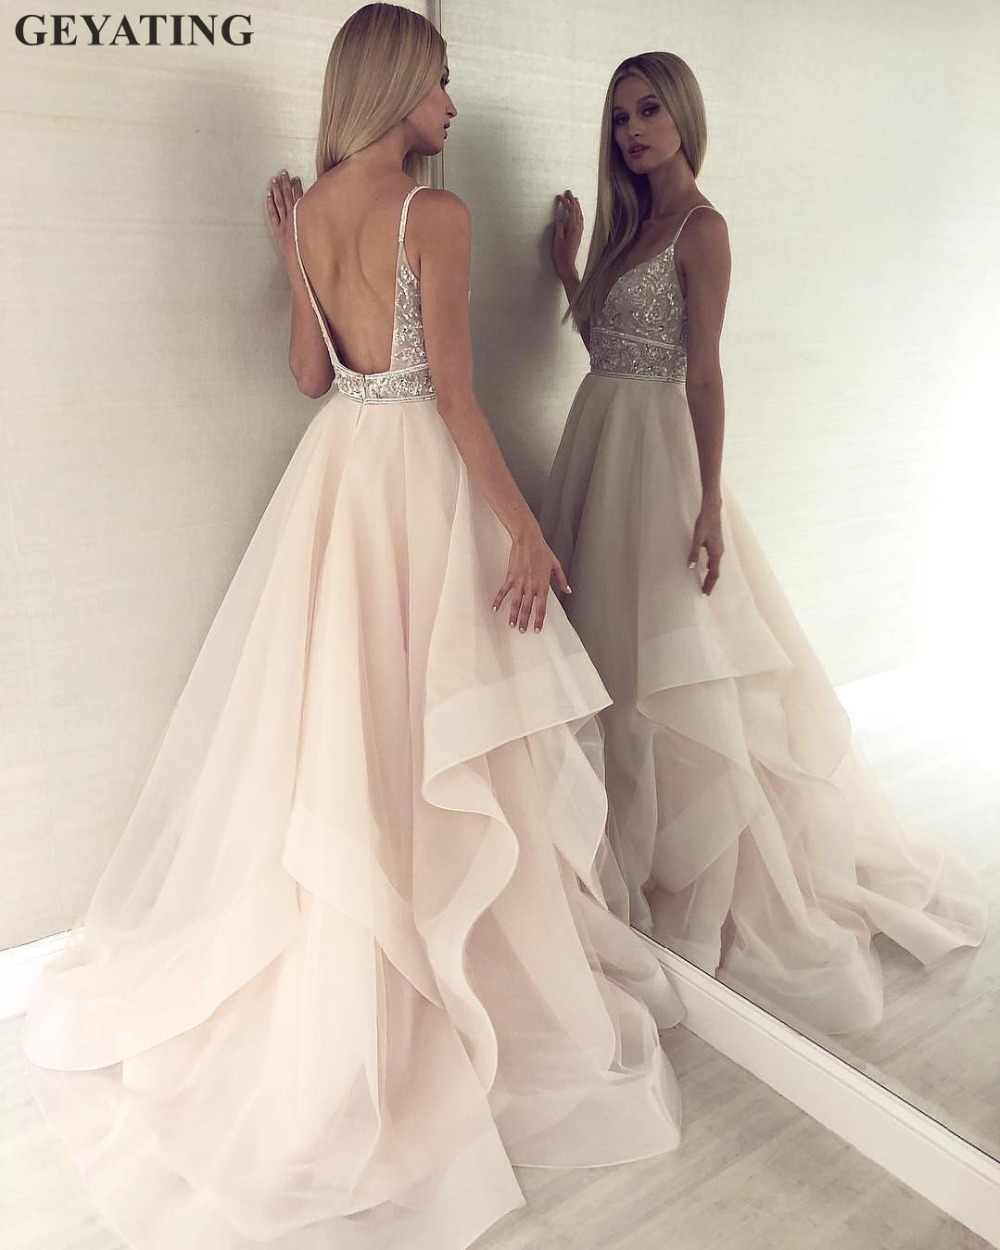 Champagne Tulle Open Back Wedding Gown 2019 Sexy Spaghetti Straps Beaded Crystal V Neck Ruffled Boho Wedding Dresses Plus Size